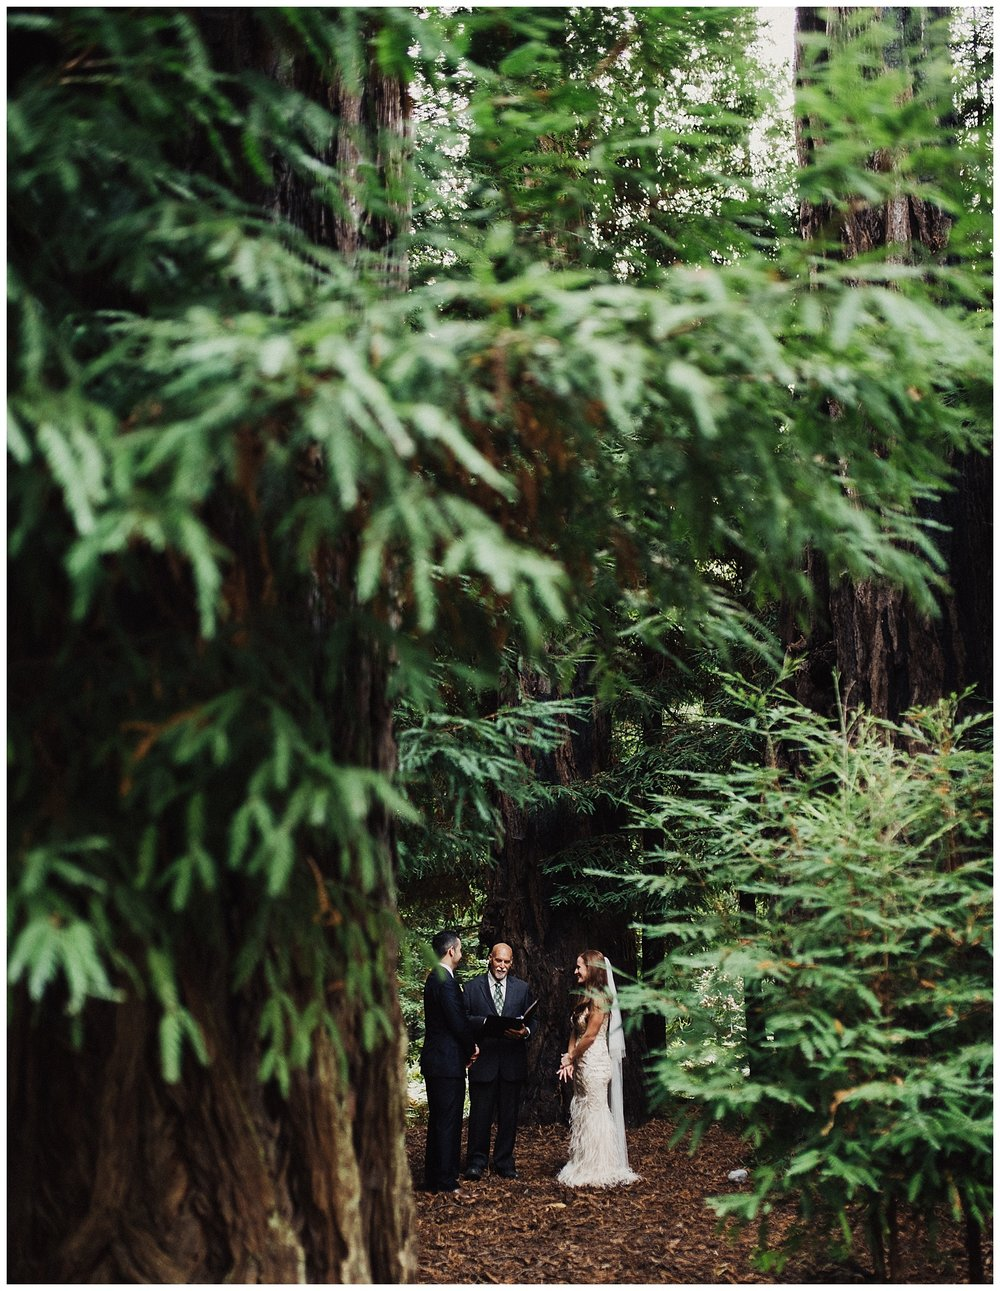 Big Sur Elopement in the Redwoods